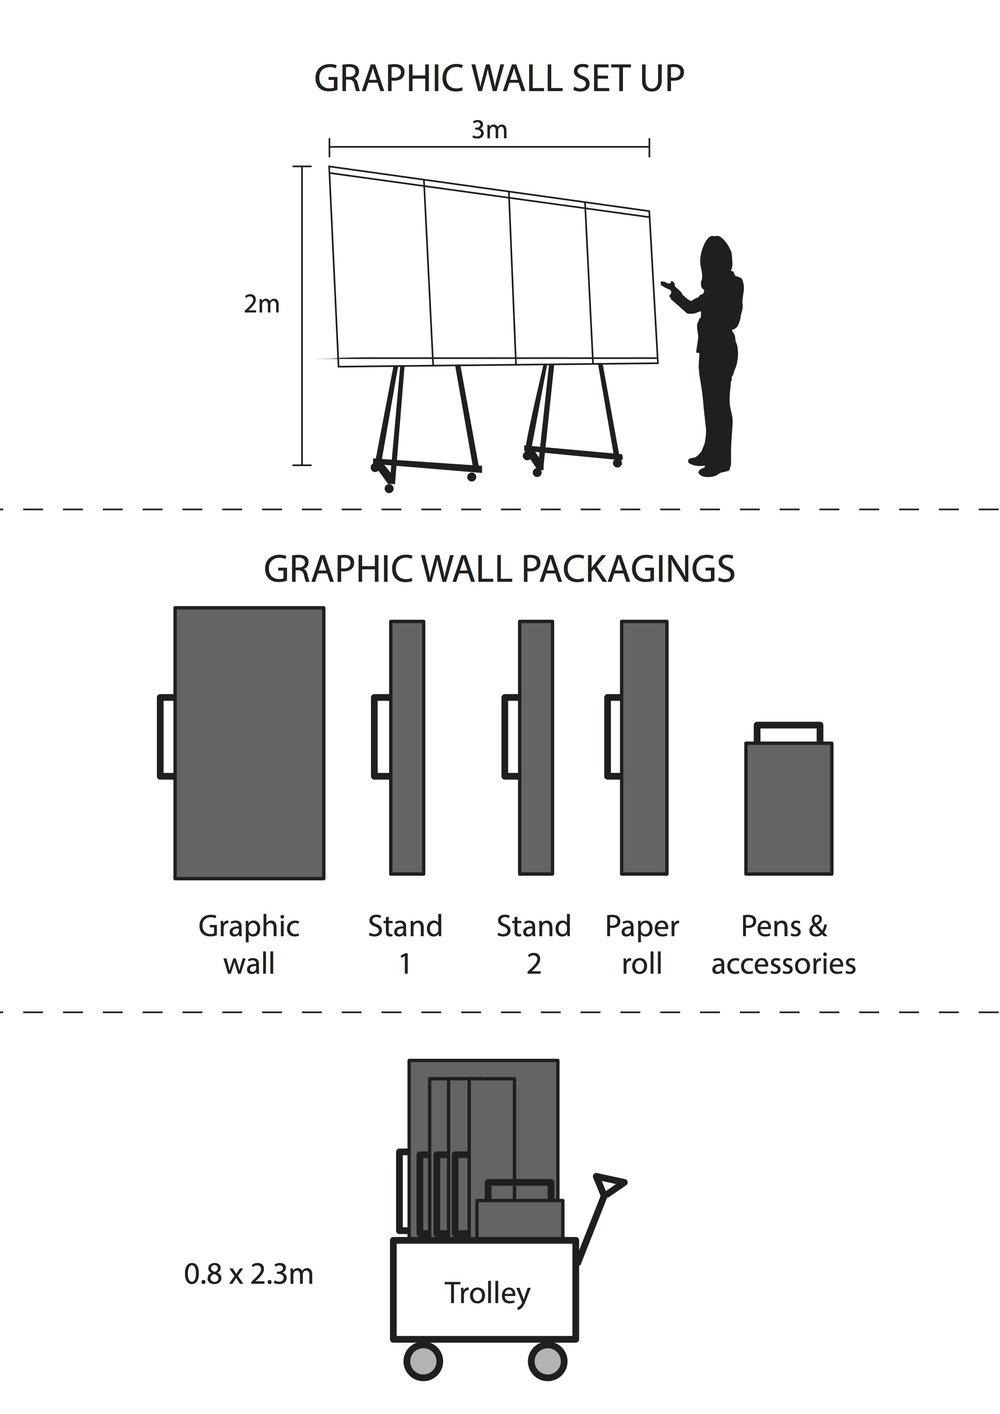 Graphic wall (300 x 200 cm)